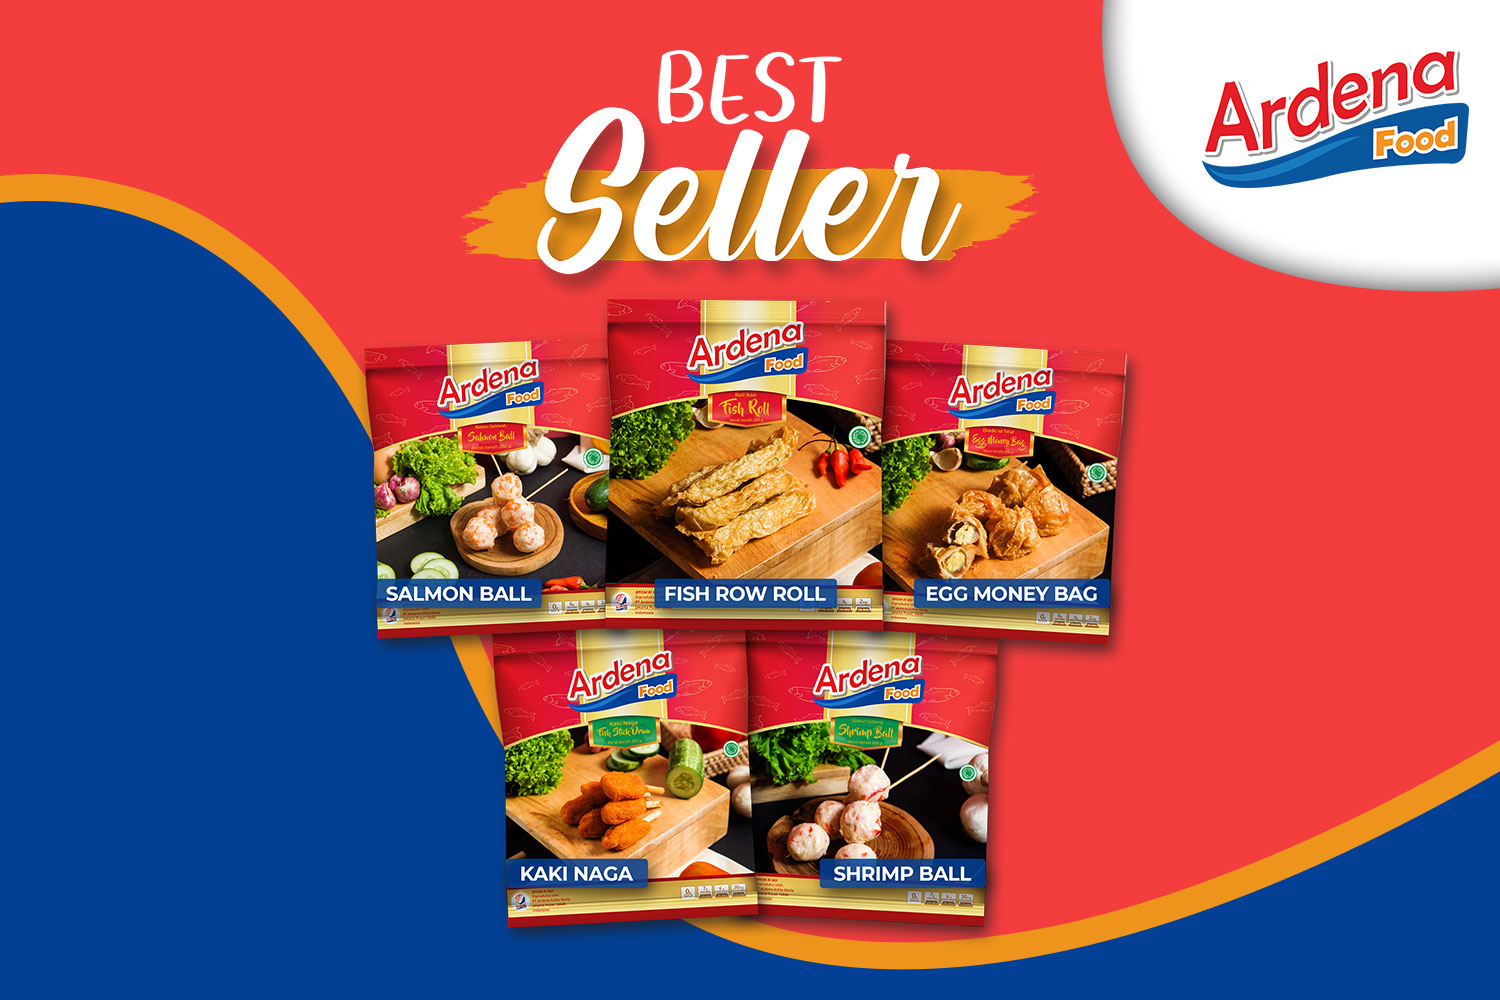 Mom's Choice: Ardena Frozen Food